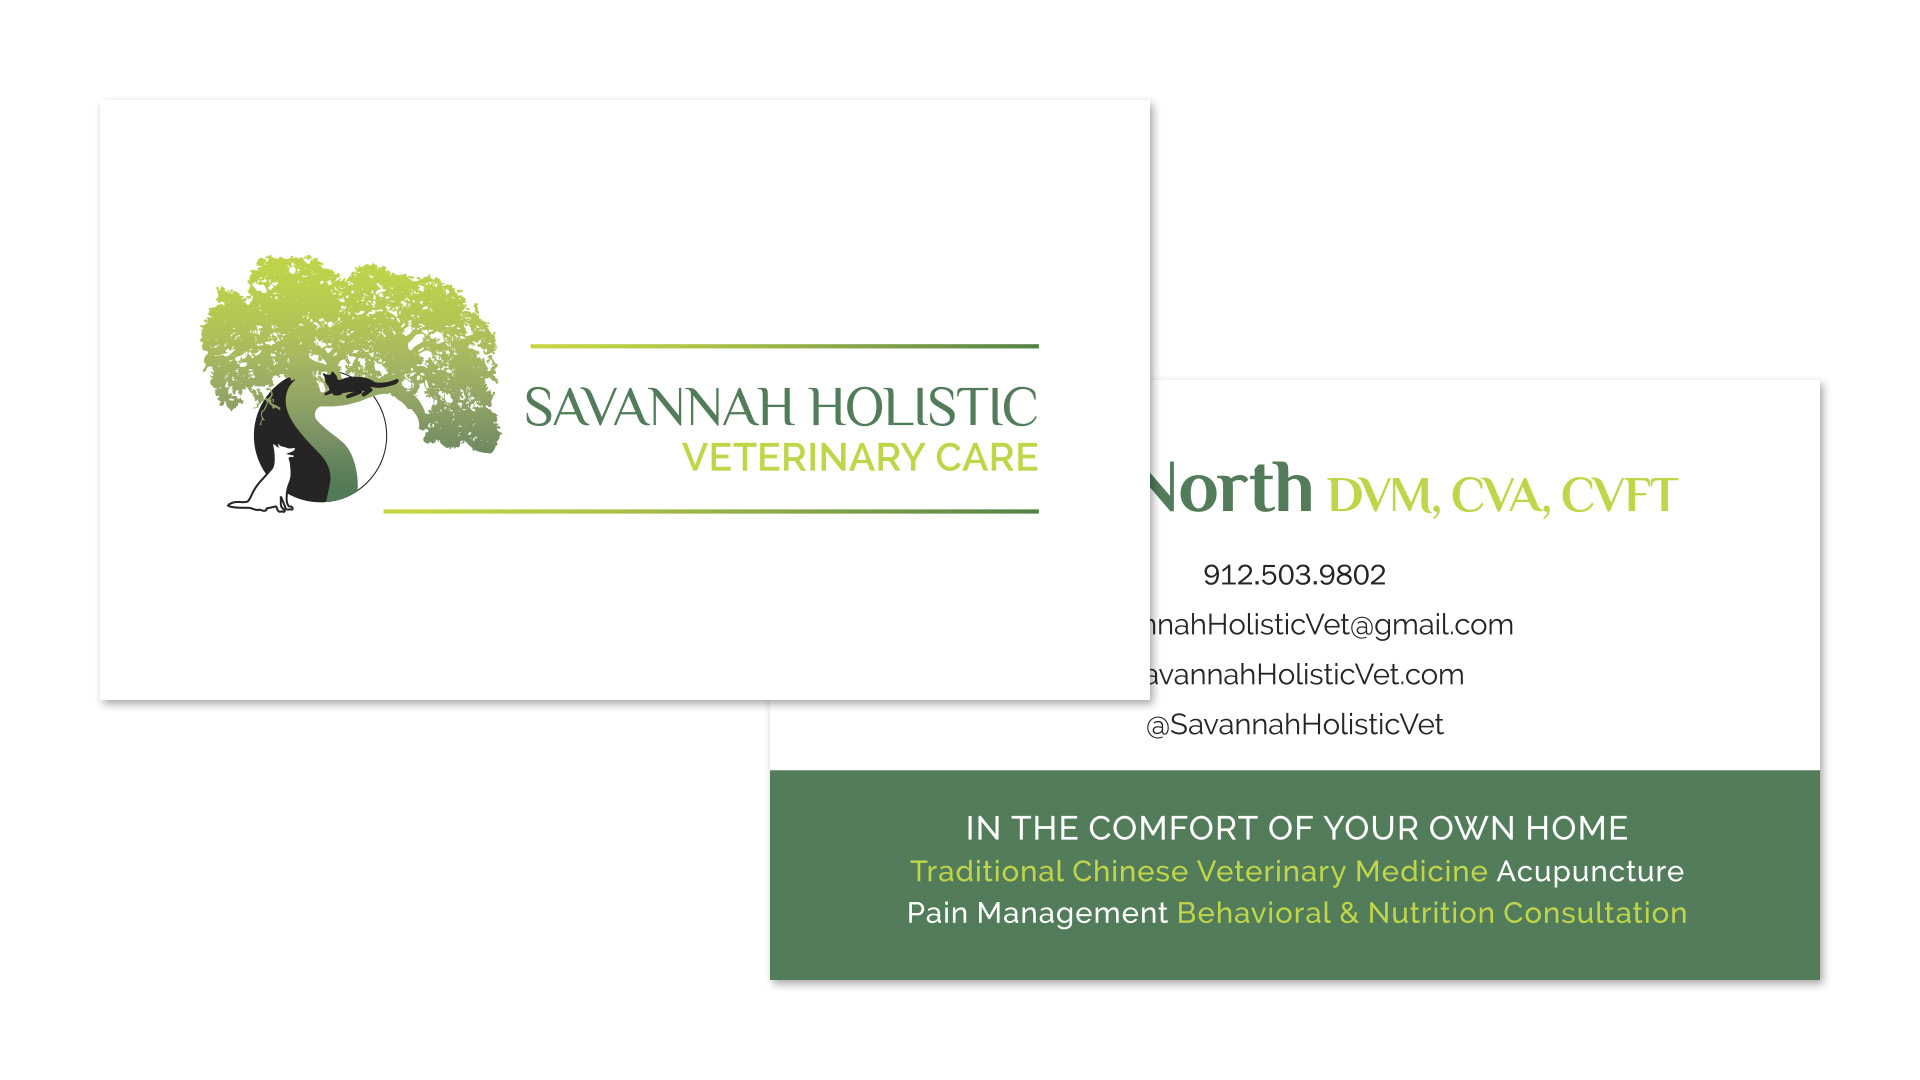 Savannah Holistic Veterinary Care Business Card - Graphic Design - Speros